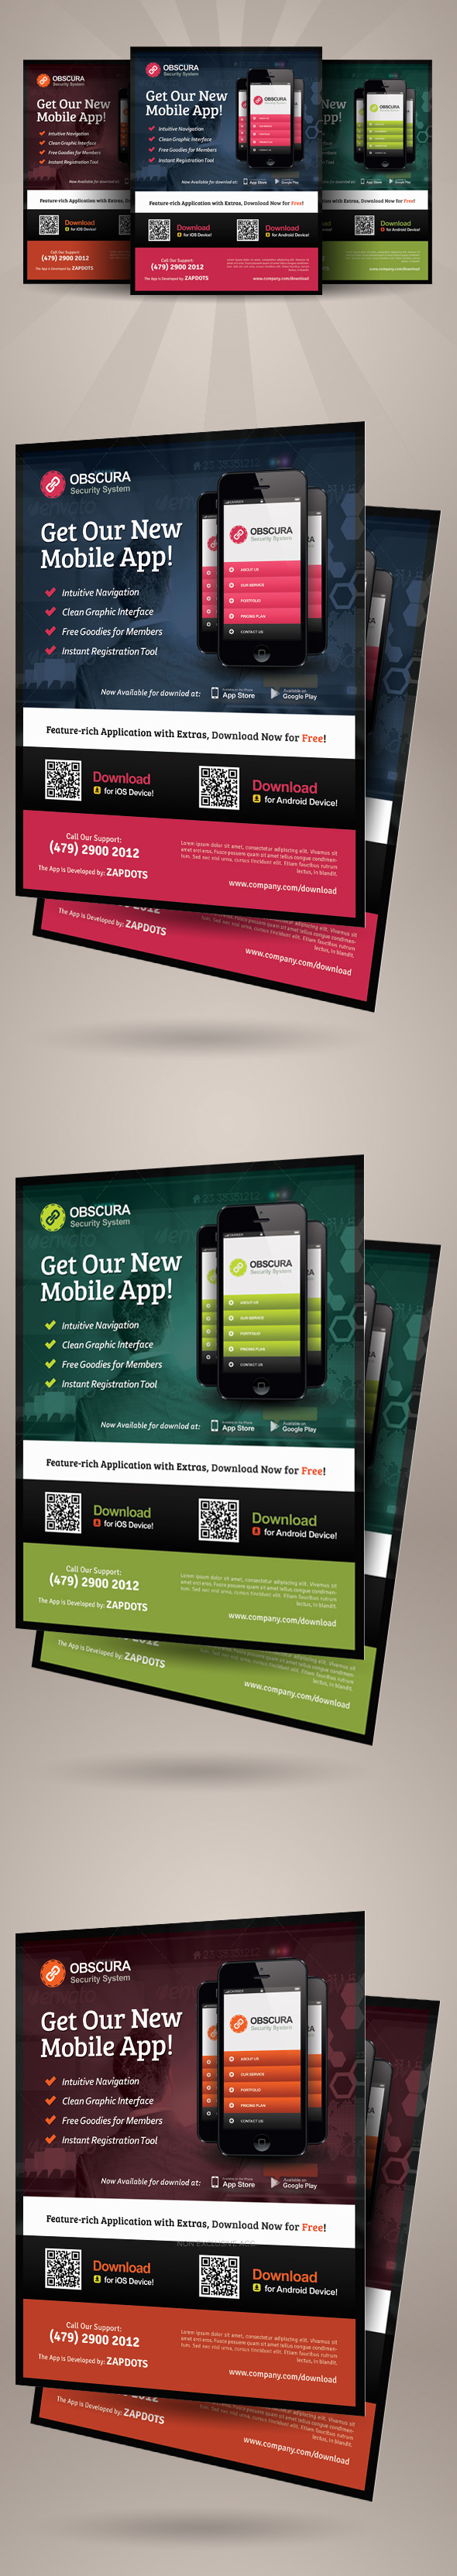 alternative mobile app flyer template on behance alternative mobile app flyer is a design template created for on graphic river more info of the templates and how to get the template sourcefiles can